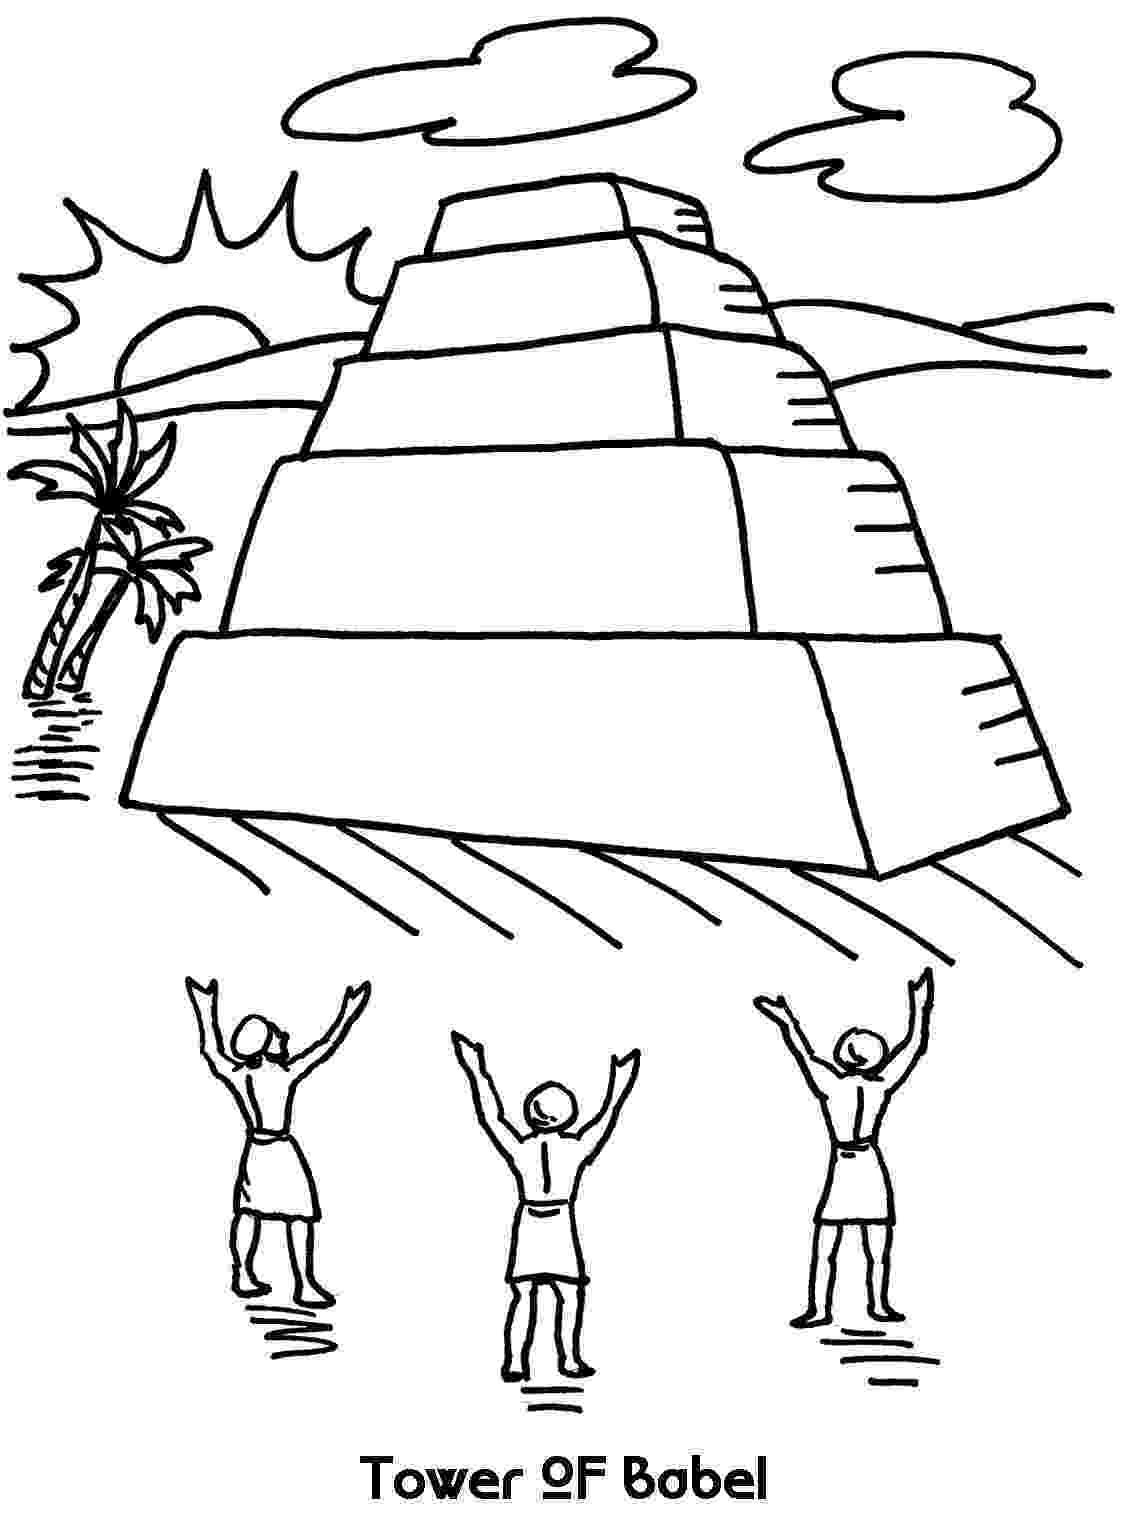 tower of babel coloring pages for kids tower of babel coloring page lesson 5 bible crafts for tower coloring kids babel of pages